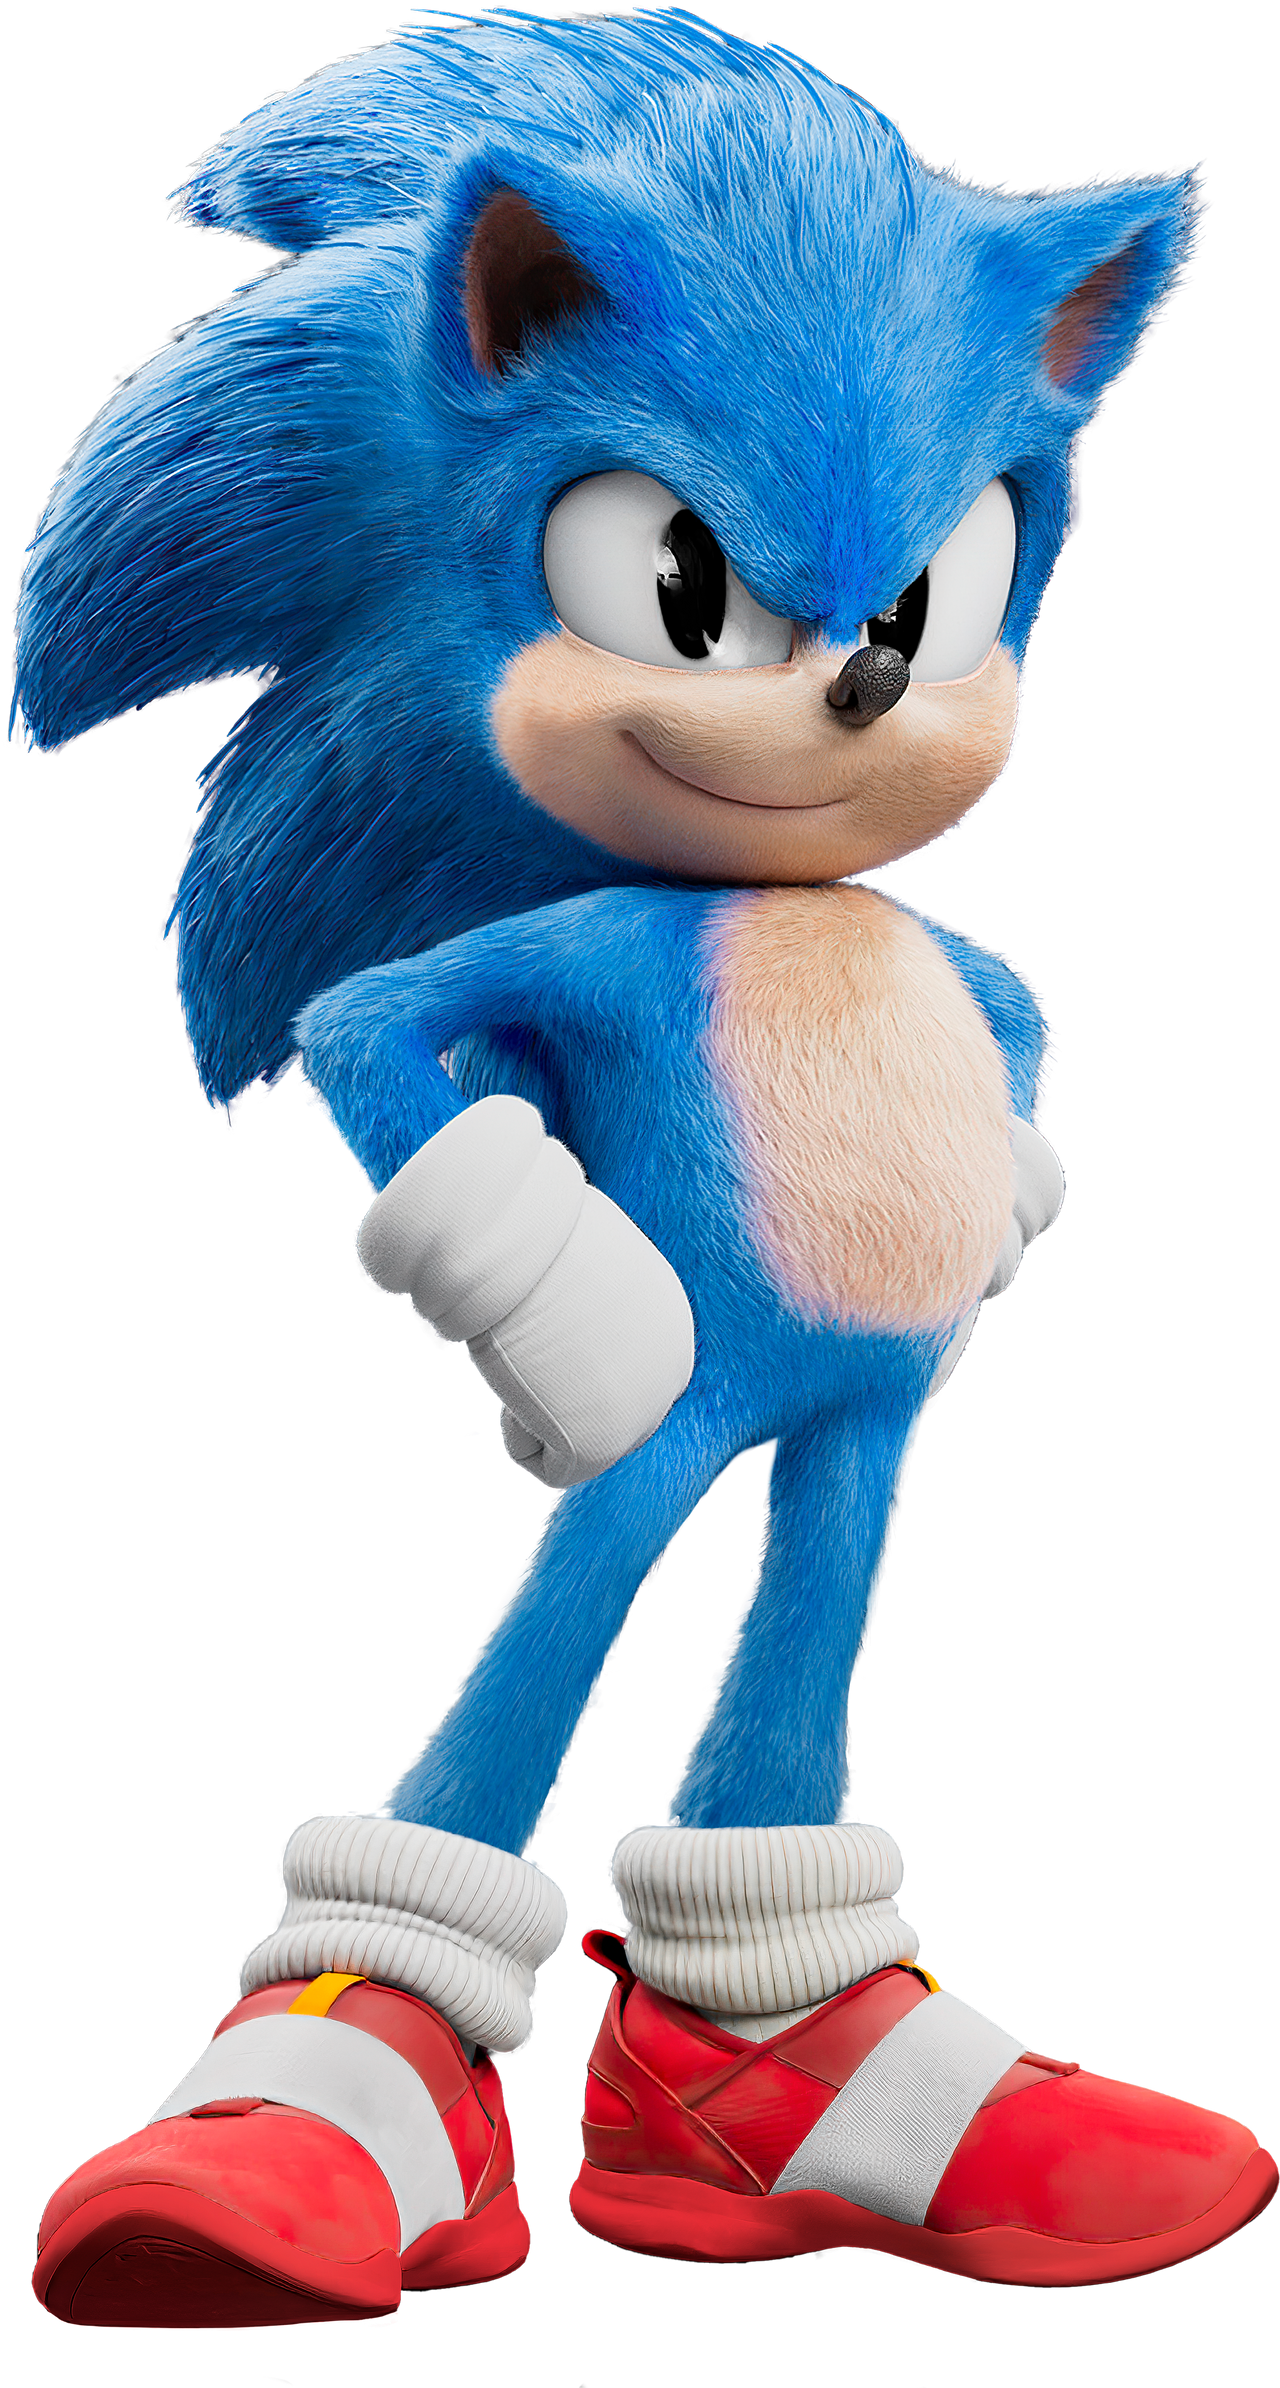 Classic Sonic Sonic The Movie Speed Edit By Christian2099 On Deviantart Sonic The Movie Sonic Sonic Dash